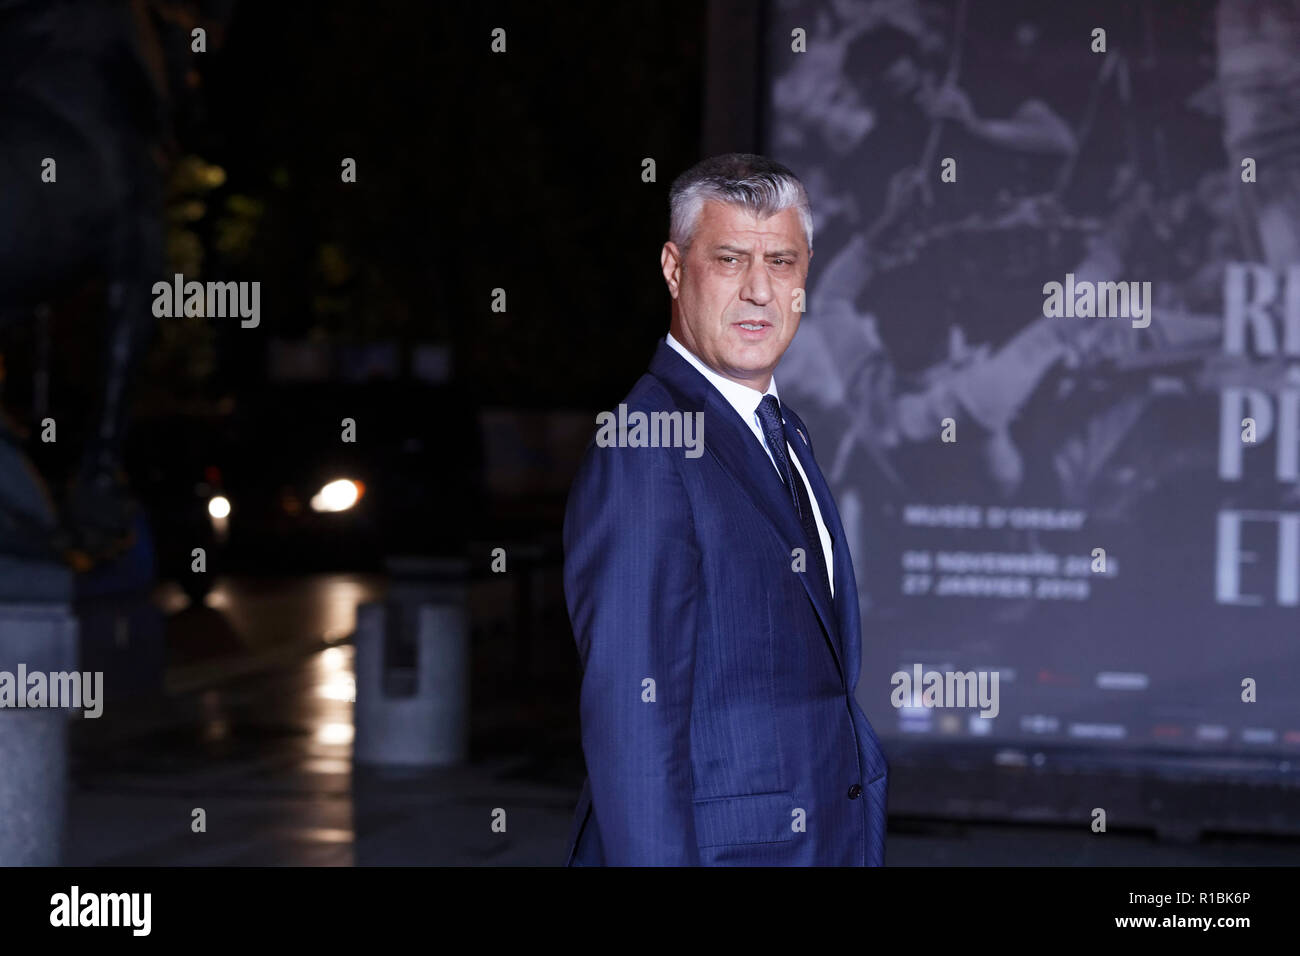 Paris, France. 10th Nov, 2018. Arrival of Kosovo's President Hashim Thaci for dinner in the presence of the heads of state, government and international organization leaders during the international commemoration of the centenary of the 1918 armistice at the Musée d'Orsay in Paris on November 10, 2018 in Paris, France. Credit: Bernard Menigault/Alamy Live News Stock Photo